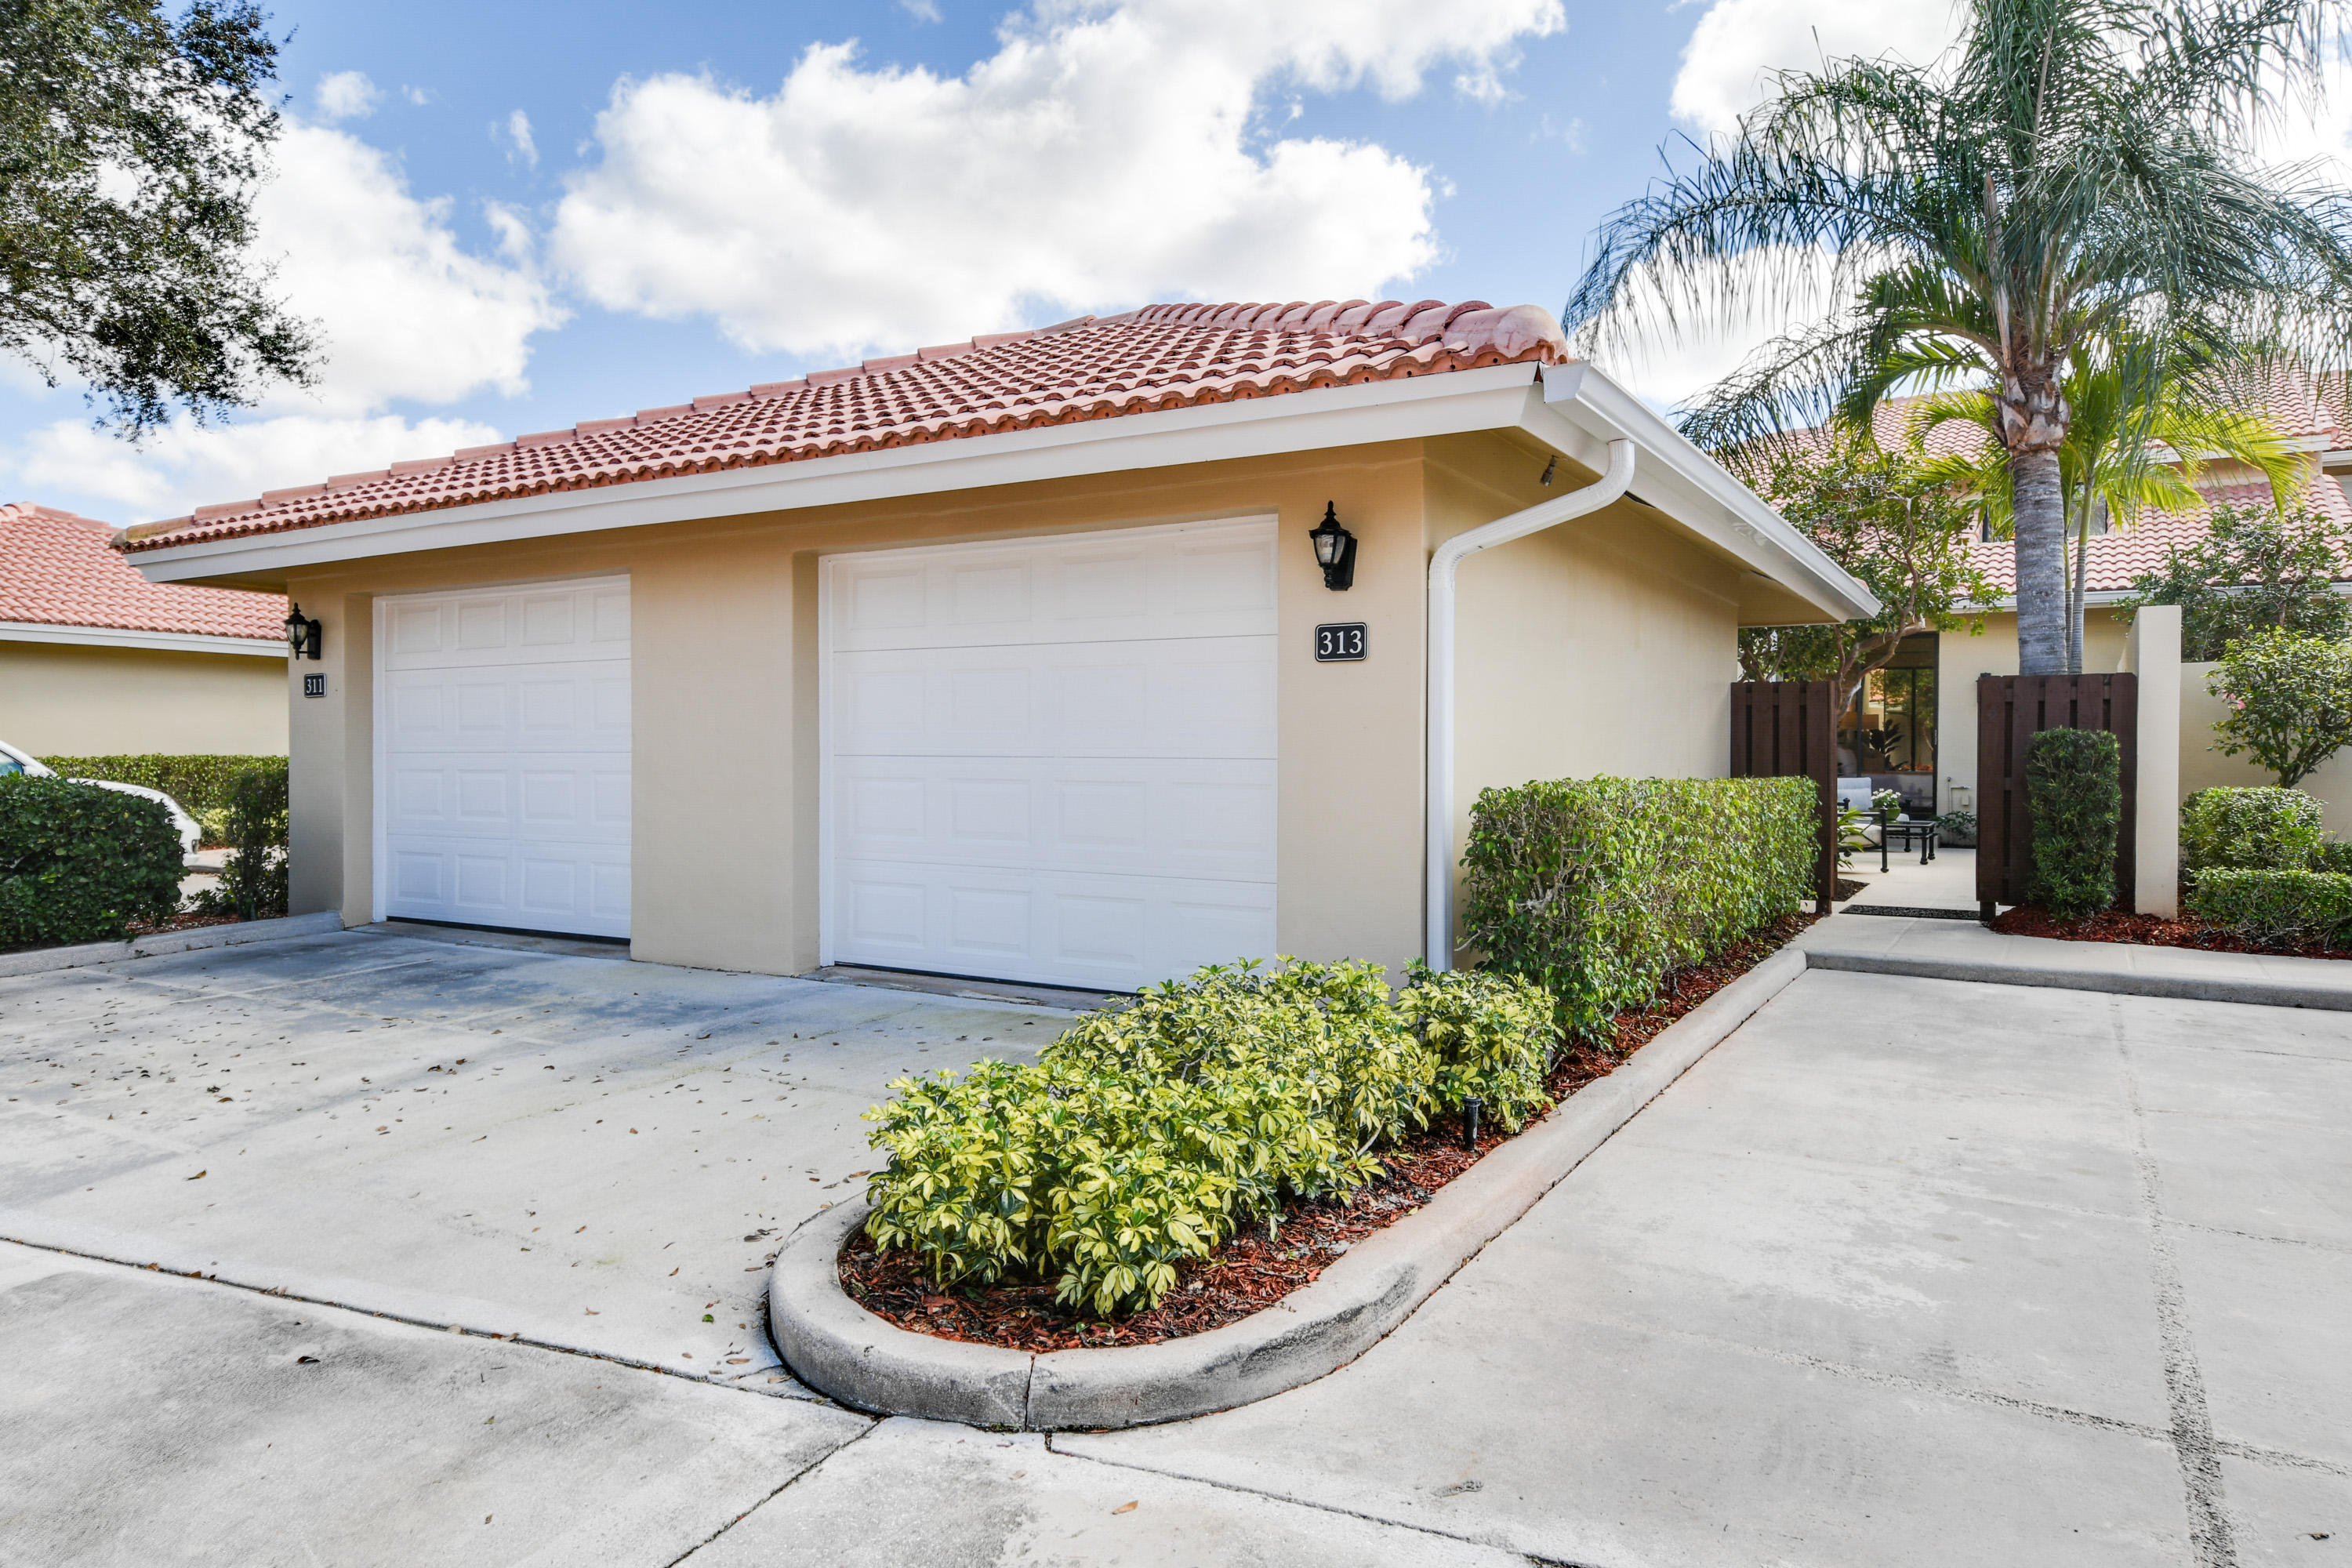 313 Old Meadow Way 313, Palm Beach Gardens, Florida 33418, 2 Bedrooms Bedrooms, ,2 BathroomsBathrooms,A,Townhouse,Old Meadow,RX-10502361